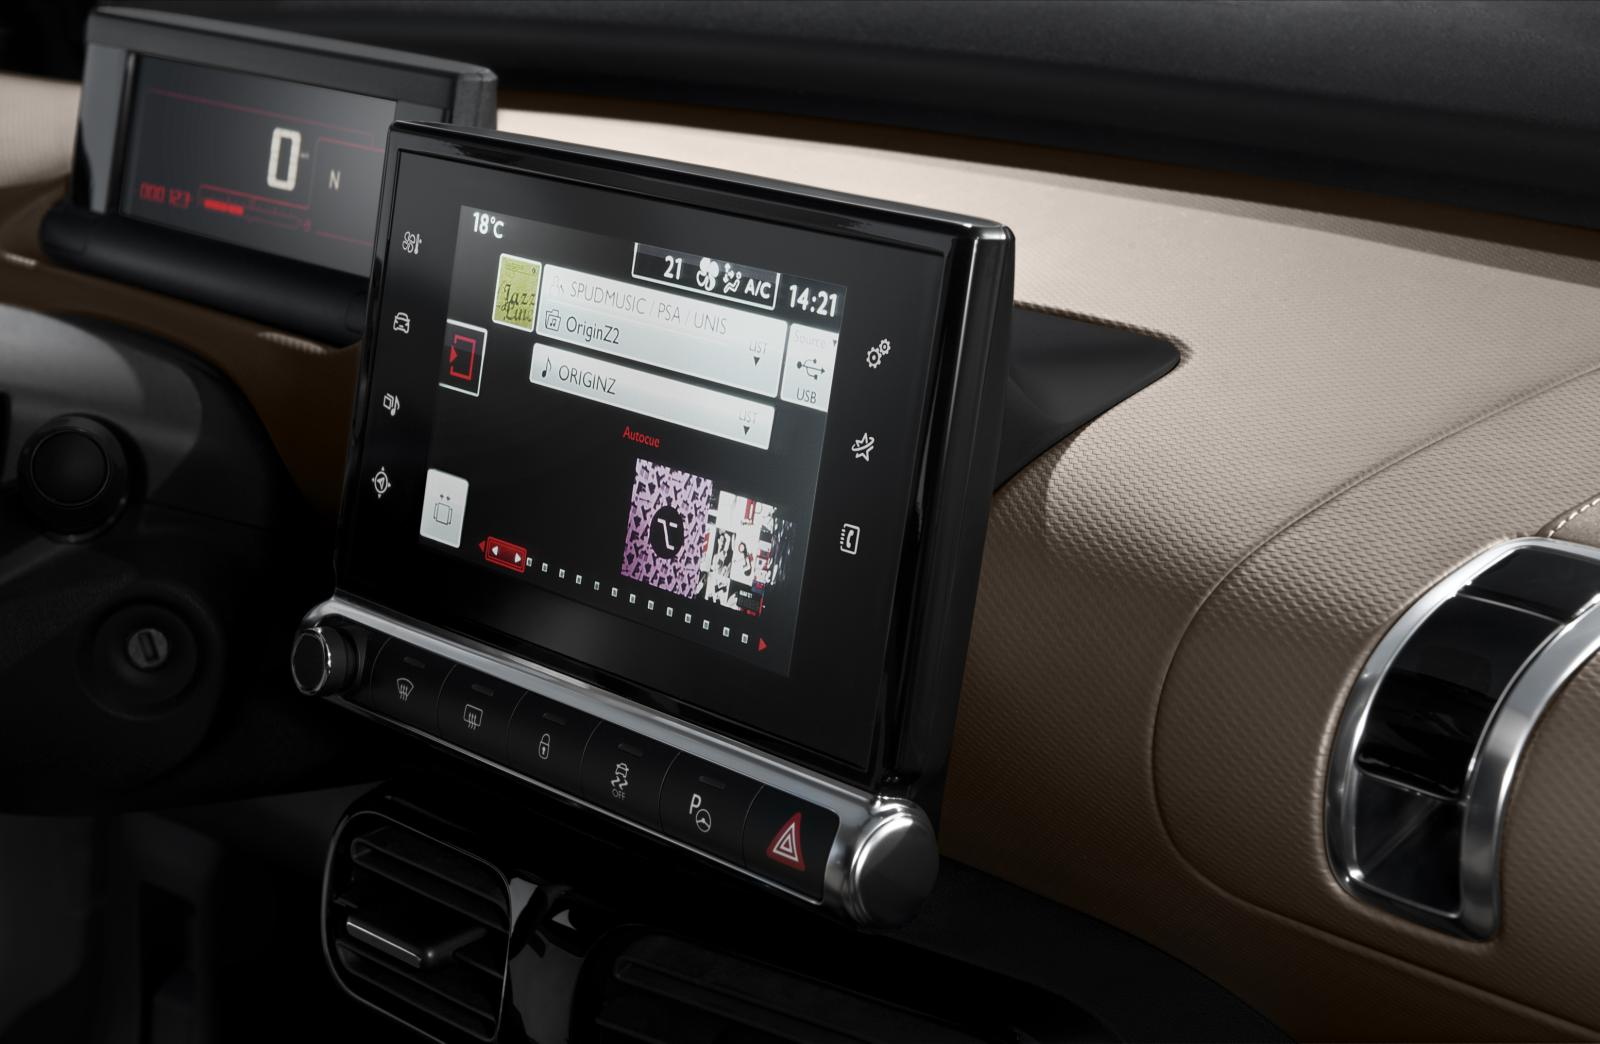 C4 Cactus Shine edition 2014 dash board